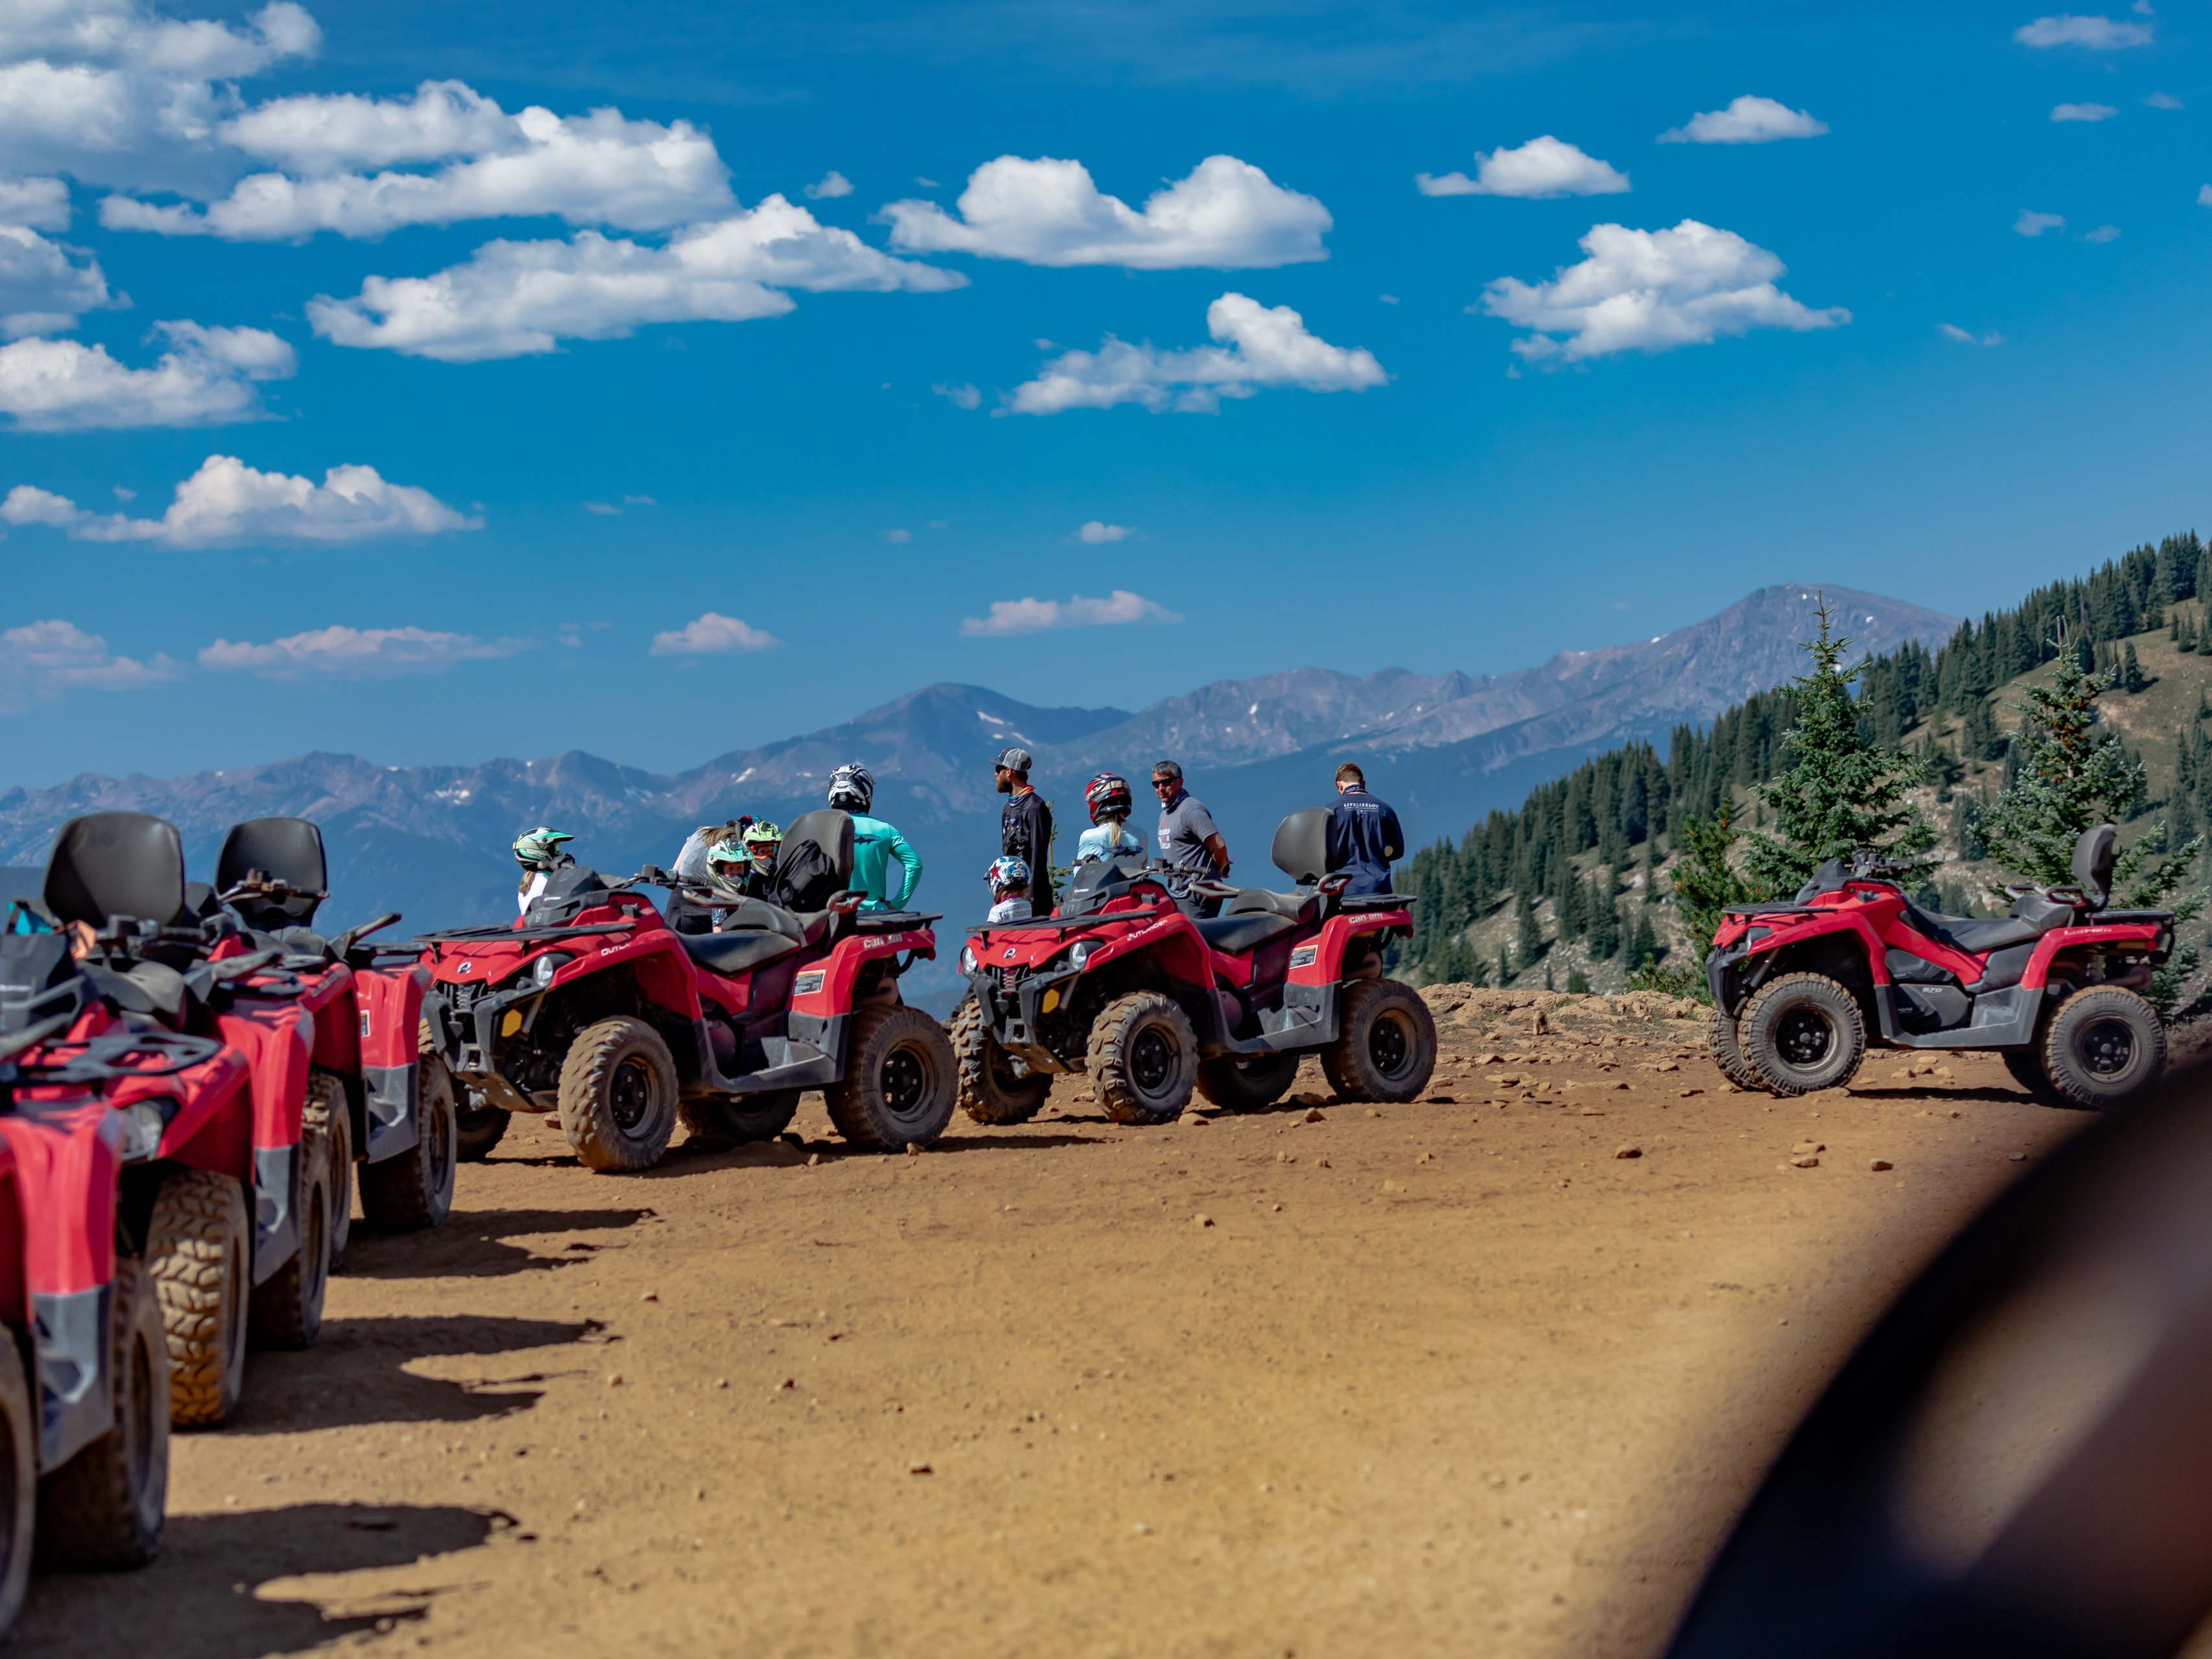 group riding ATV at the top of the mountain